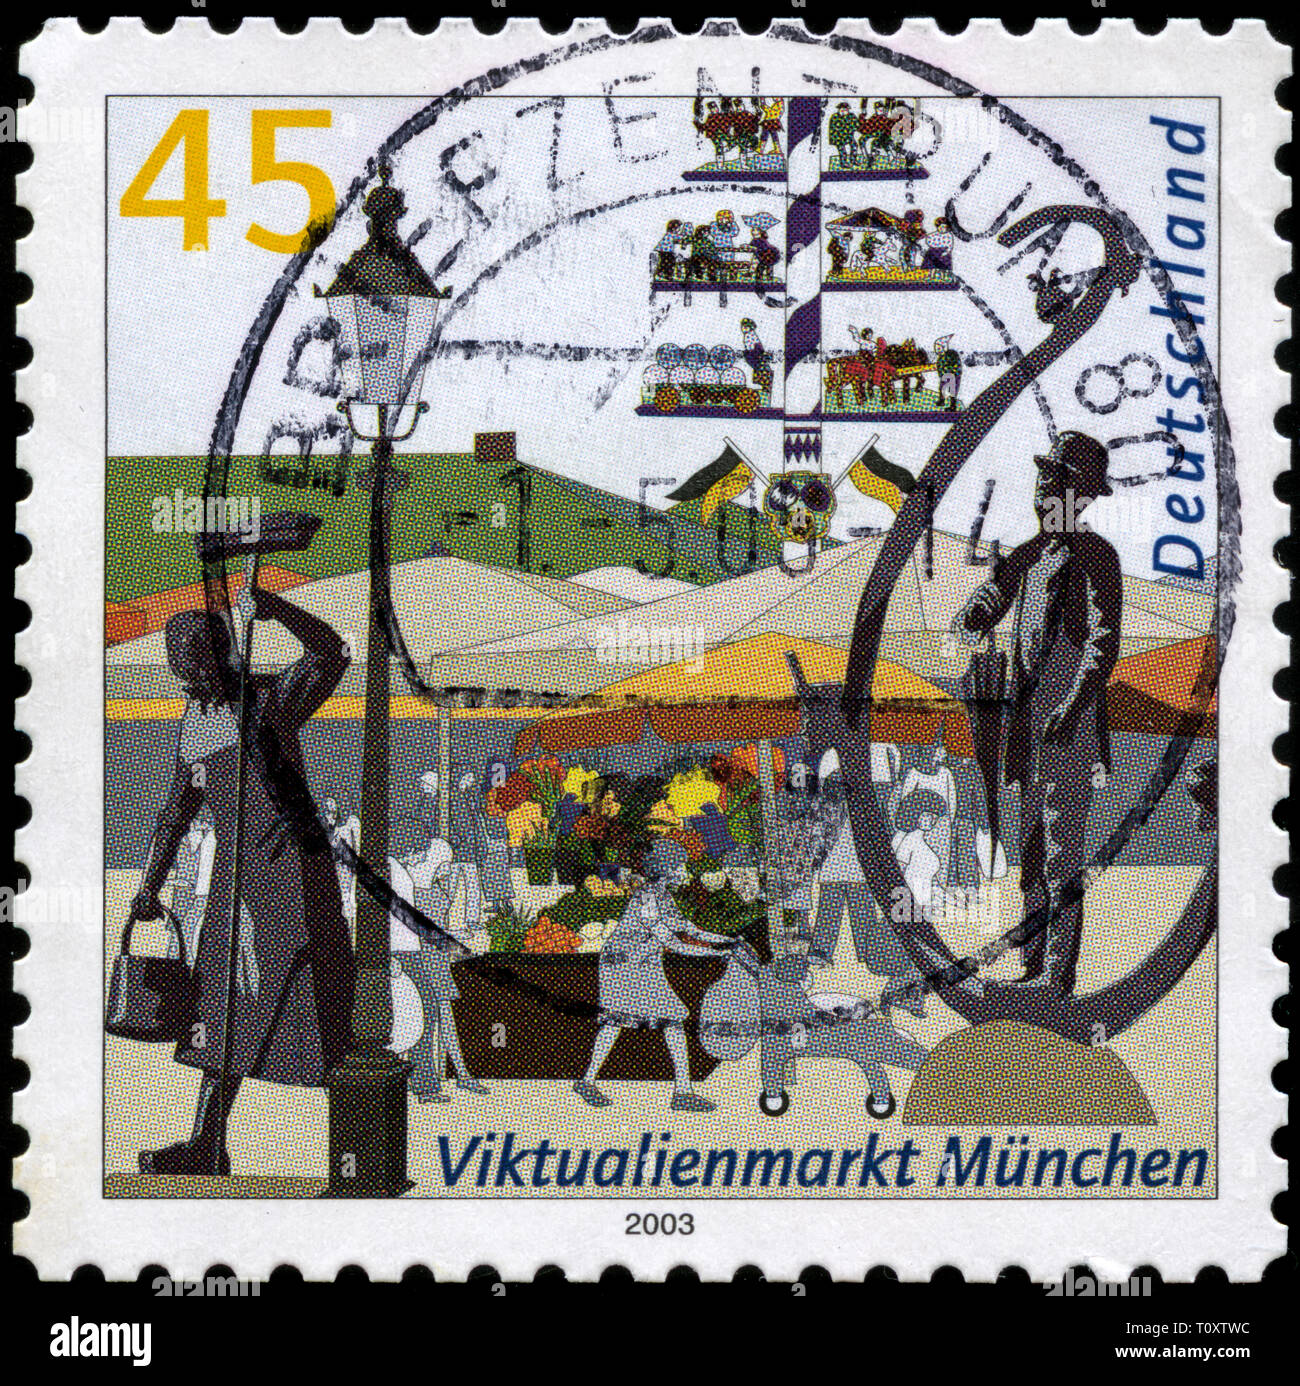 Postage stamp from the Federal Republic of Germany in the Pictures of German cities series issued in 2004 Stock Photo